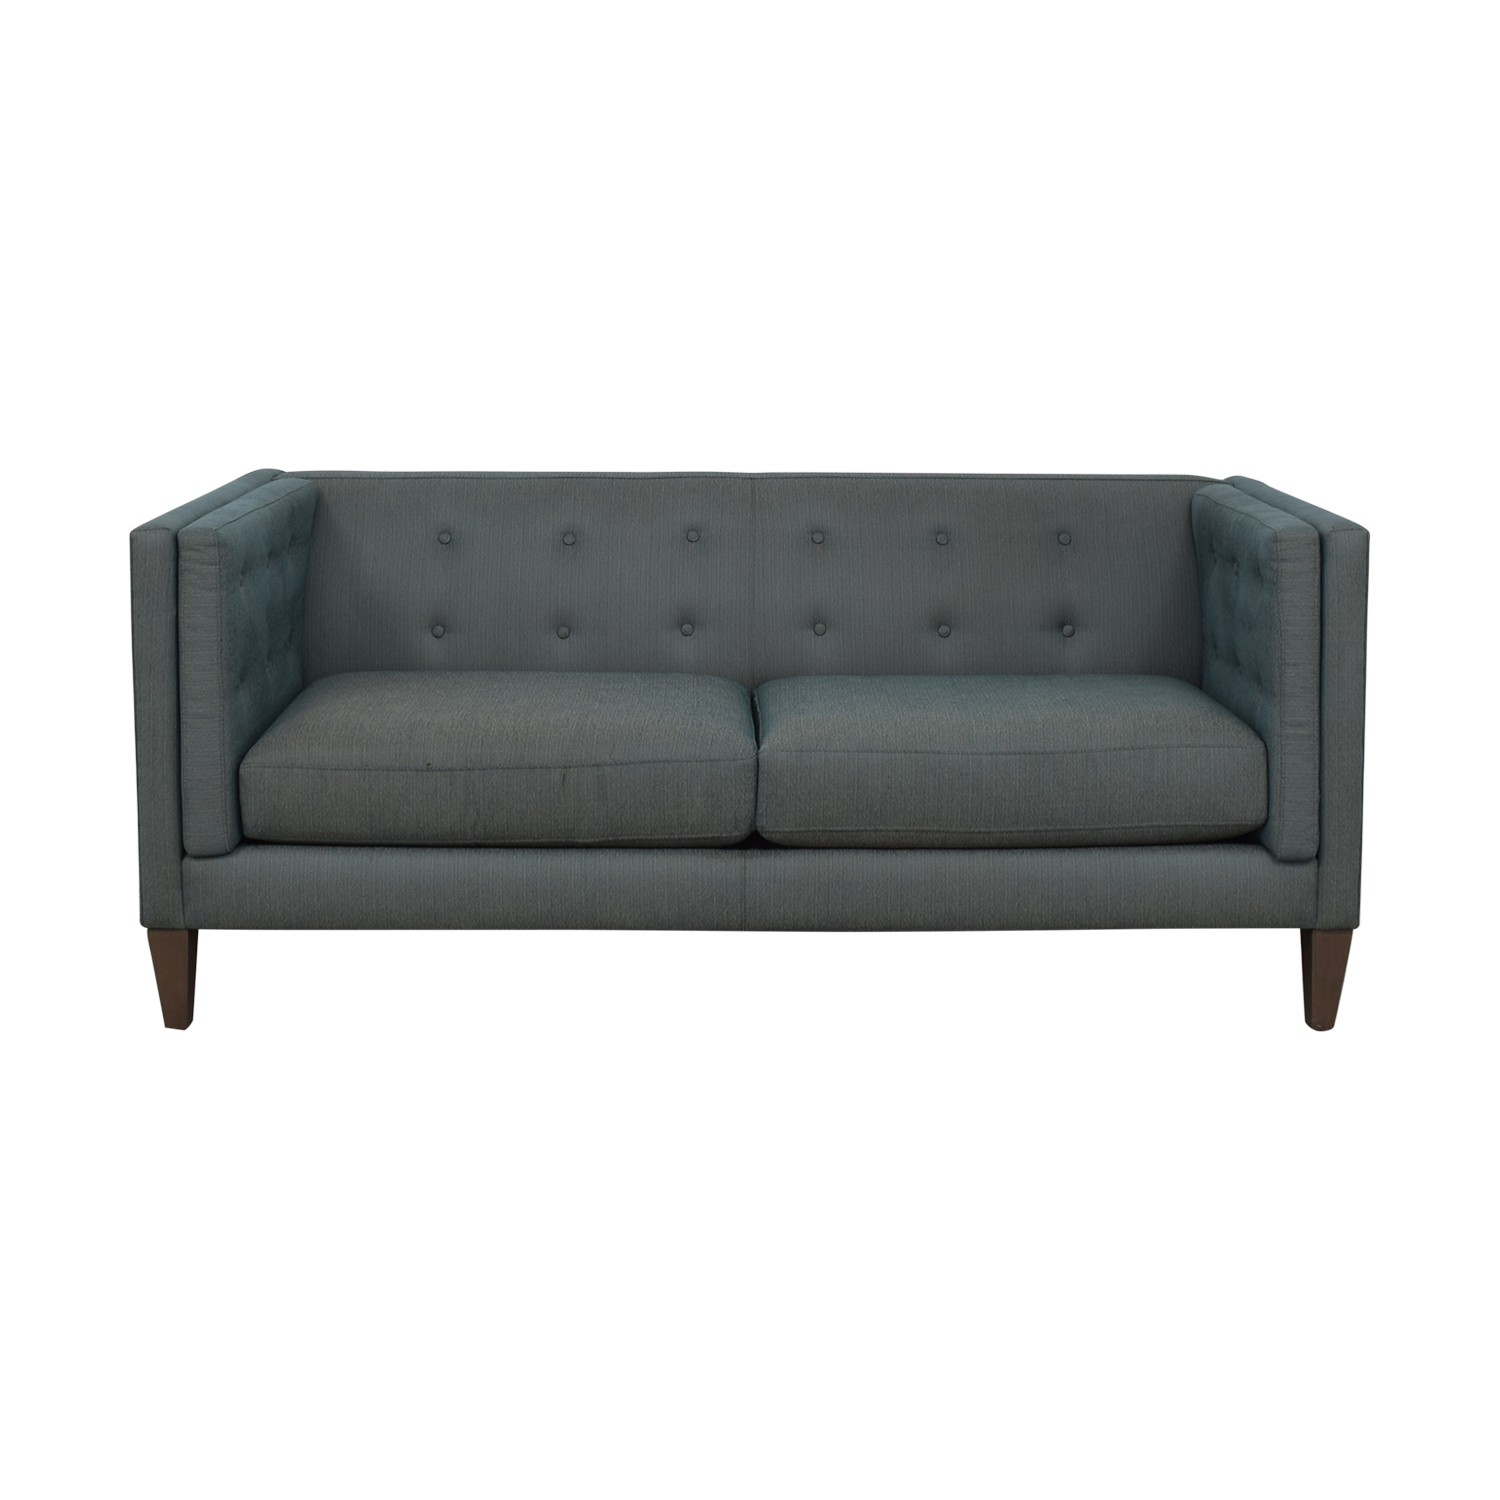 Crate & Barrel Crate & Barrel Aiden Sofa Sofas